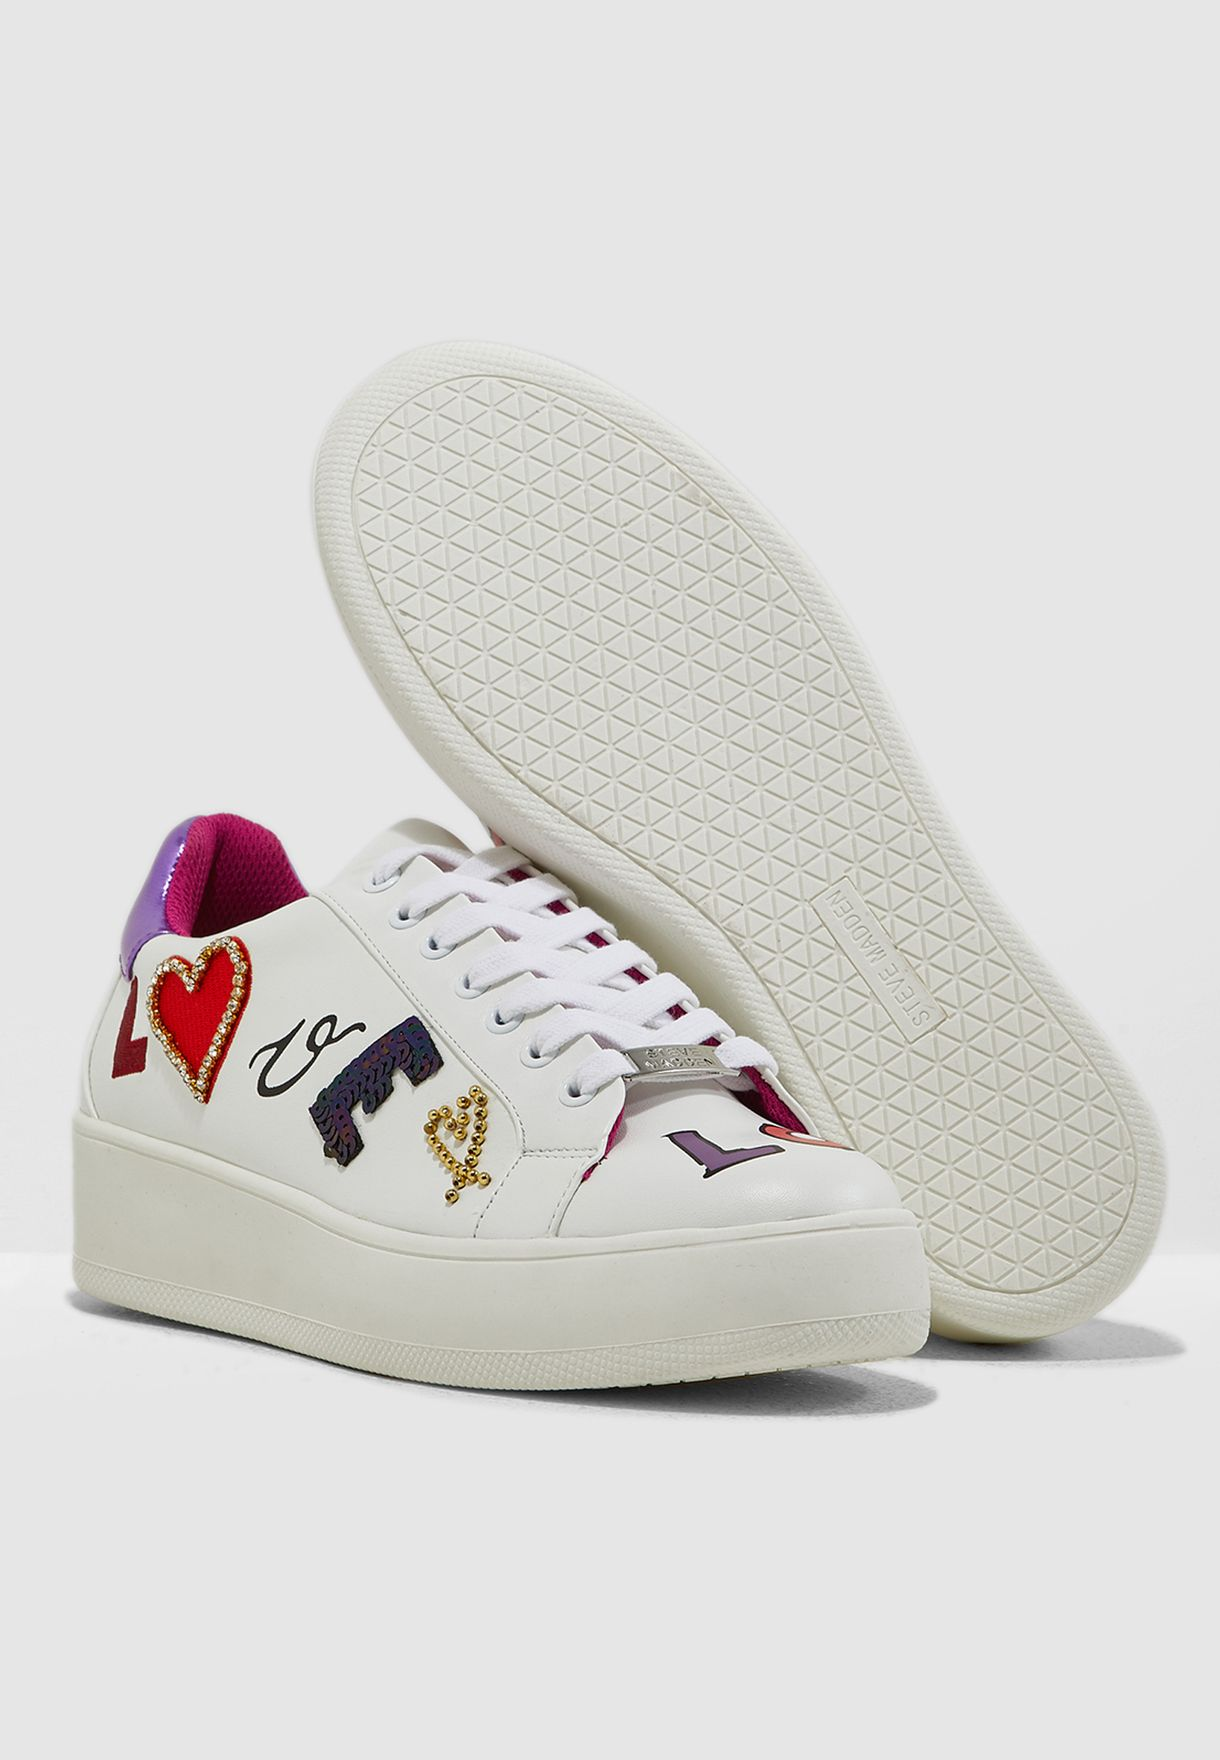 Bugout Chunky Sneaker - White